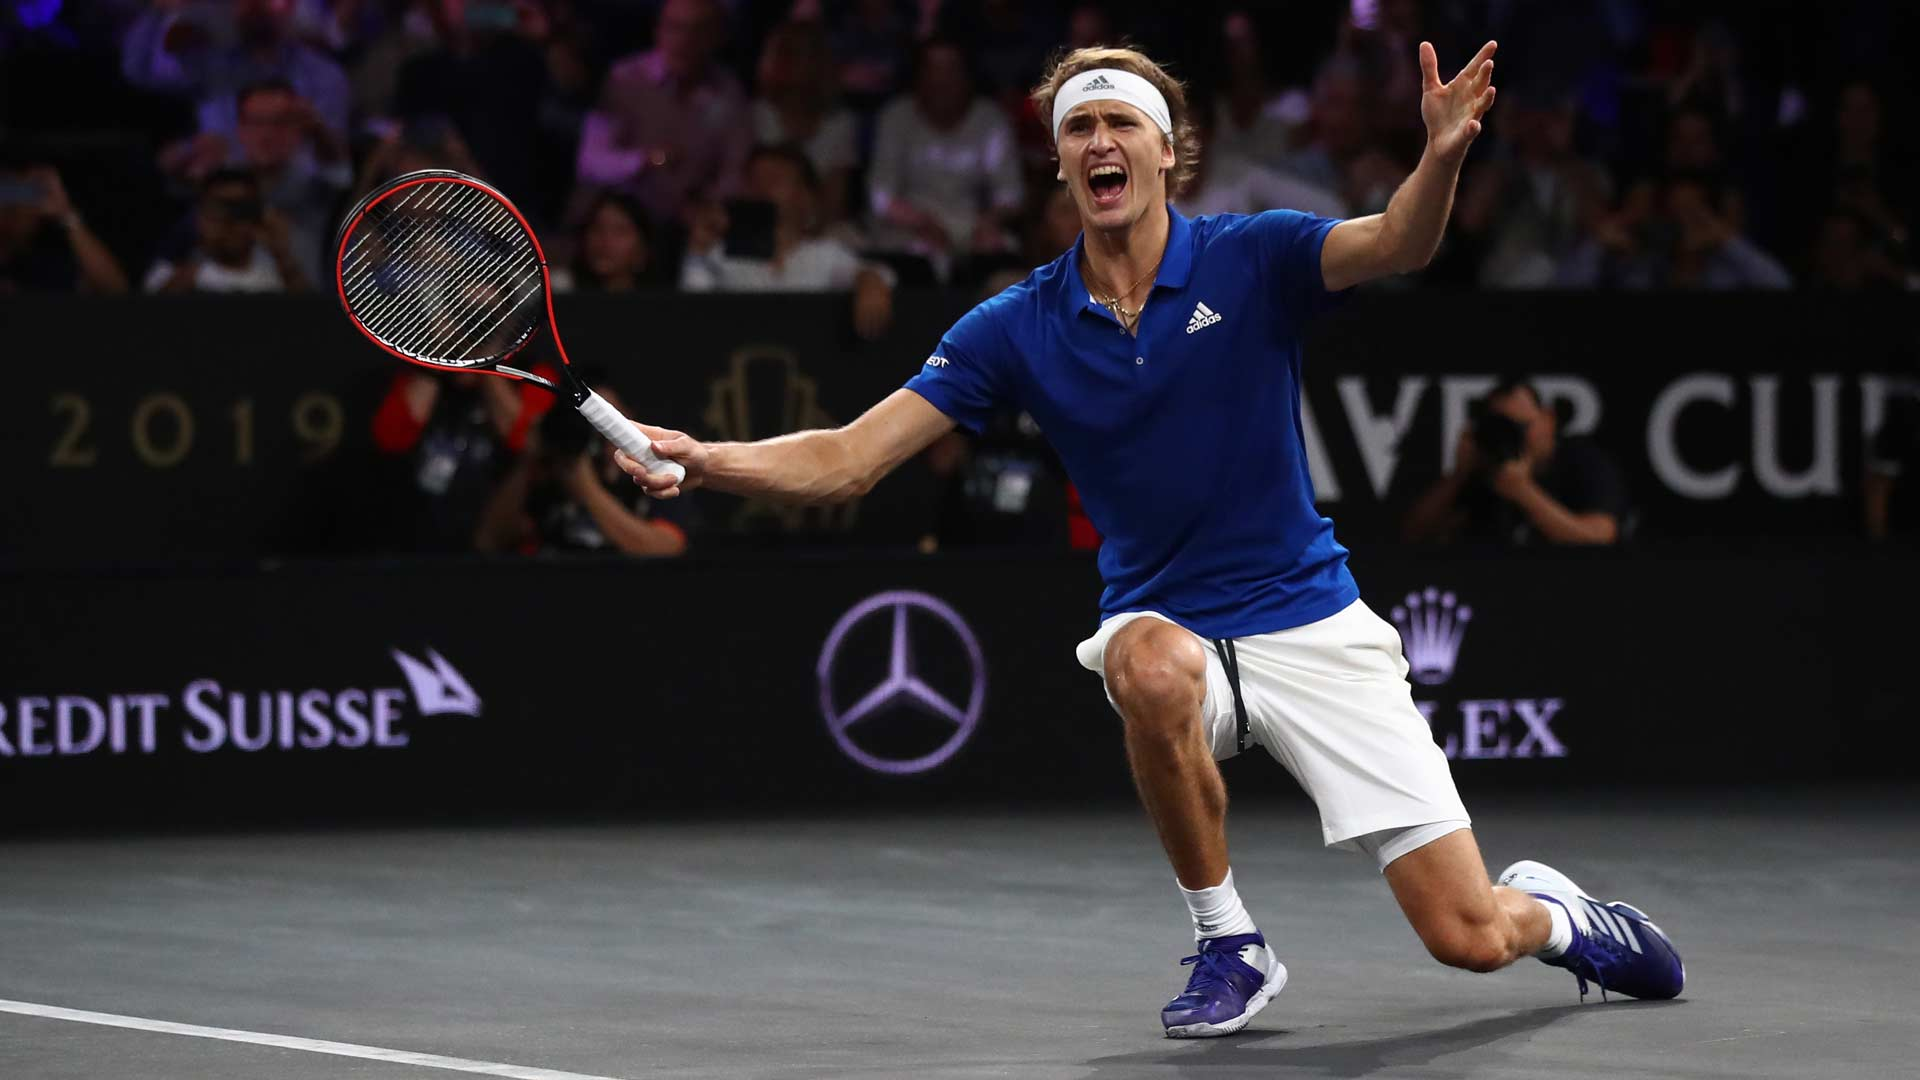 <a href='https://www.atptour.com/en/players/alexander-zverev/z355/overview'>Alexander Zverev</a> defeats <a href='https://www.atptour.com/en/players/milos-raonic/r975/overview'>Milos Raonic</a> to win the <a href='https://www.atptour.com/en/tournaments/laver-cup/9210/overview'>Laver Cup</a>